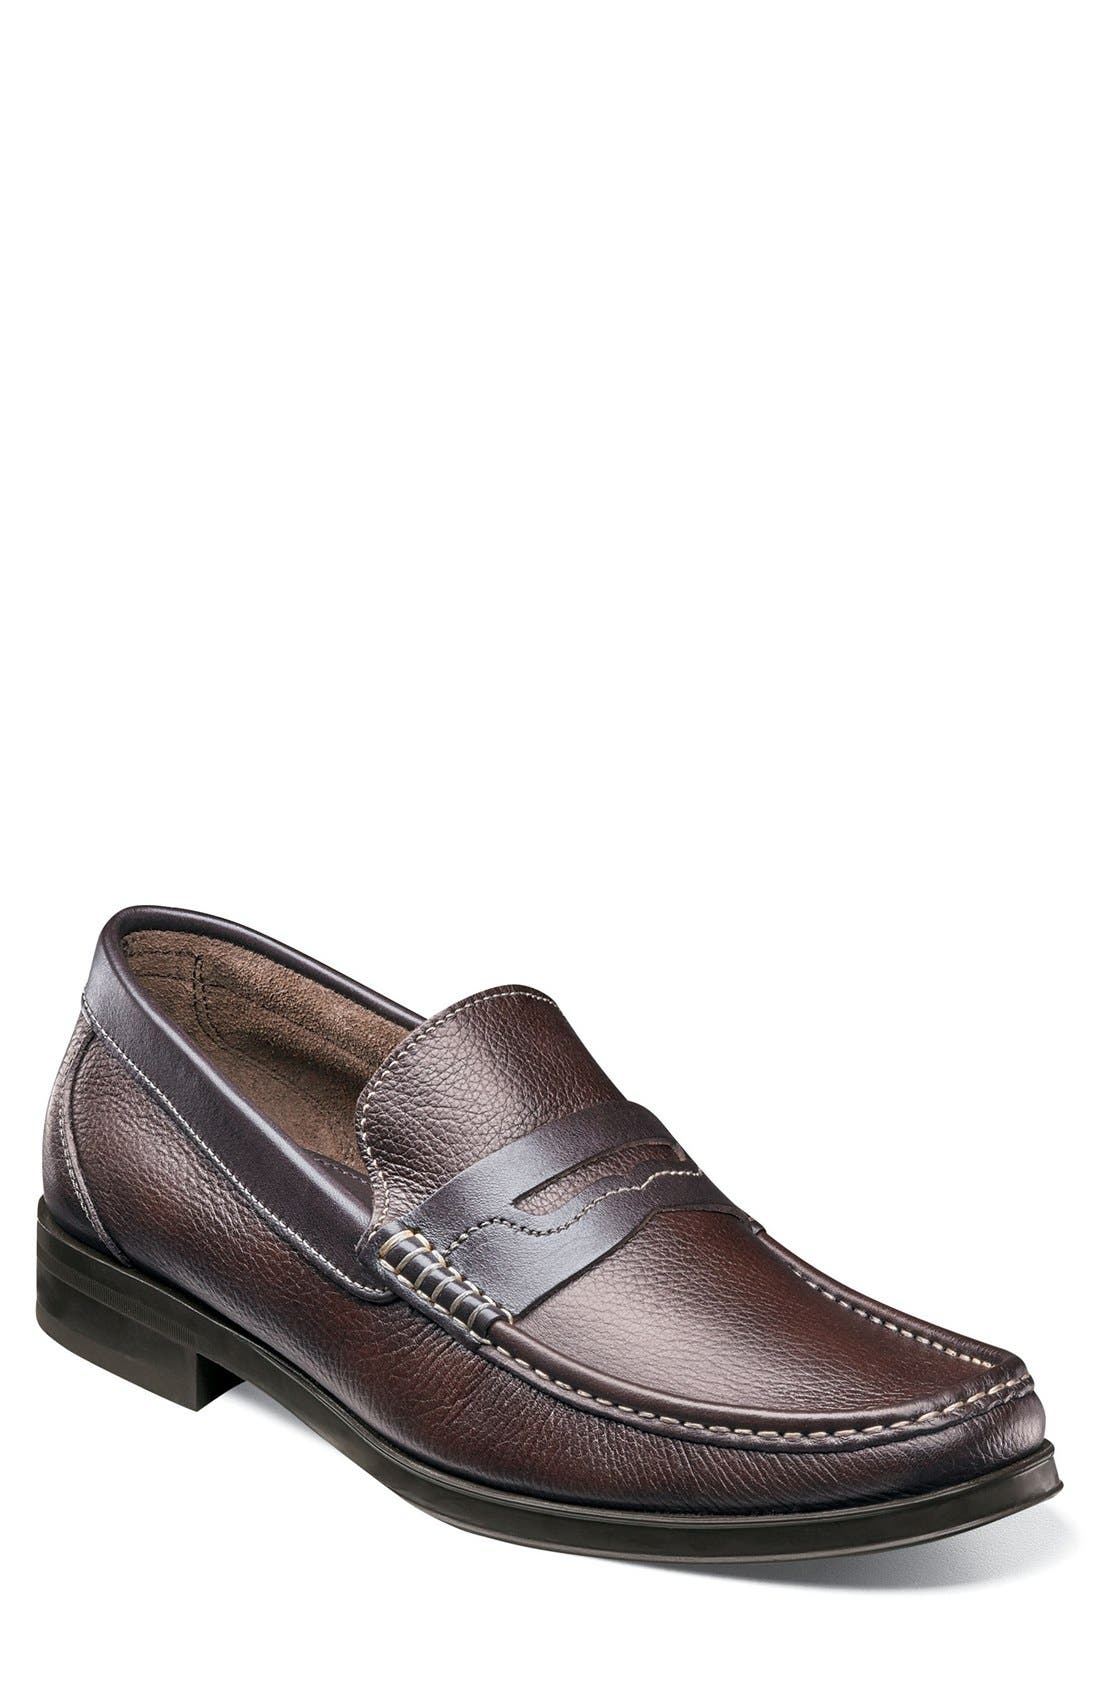 Westbrook Penny Loafer,                         Main,                         color, Brown Milled Leather